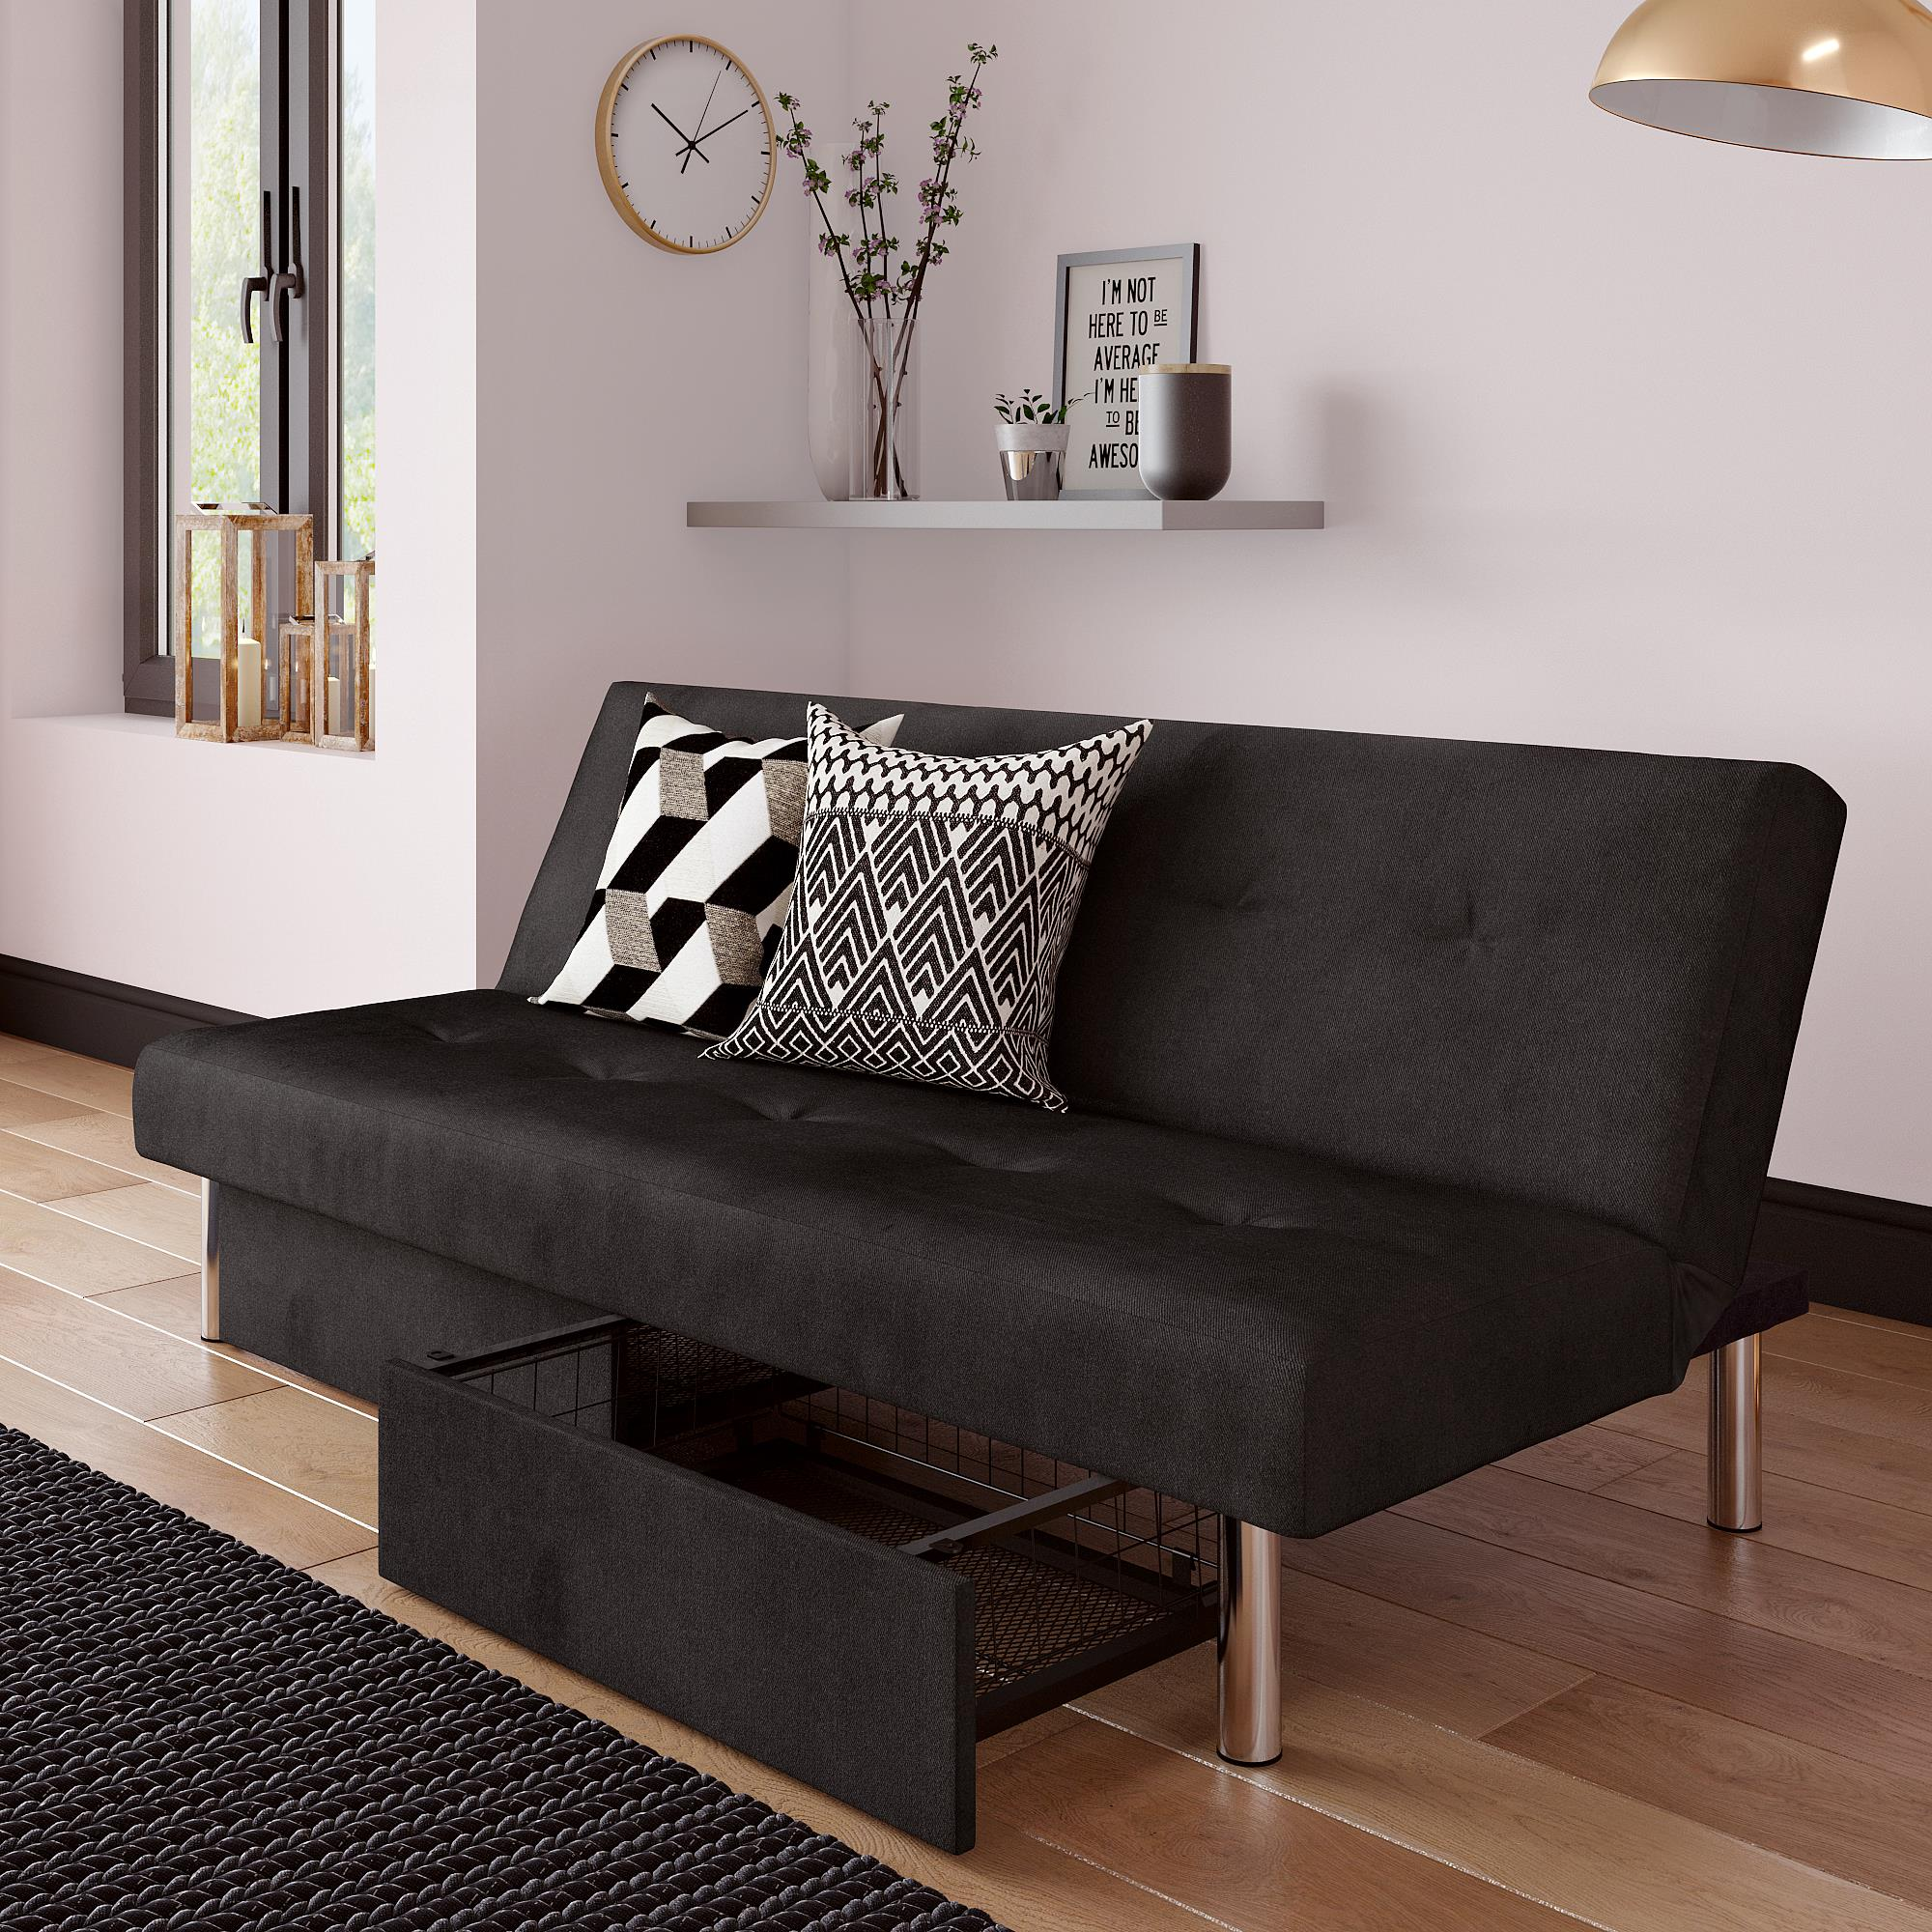 Realrooms Stacey Futon Couch With Storage Drawers Small Spaces